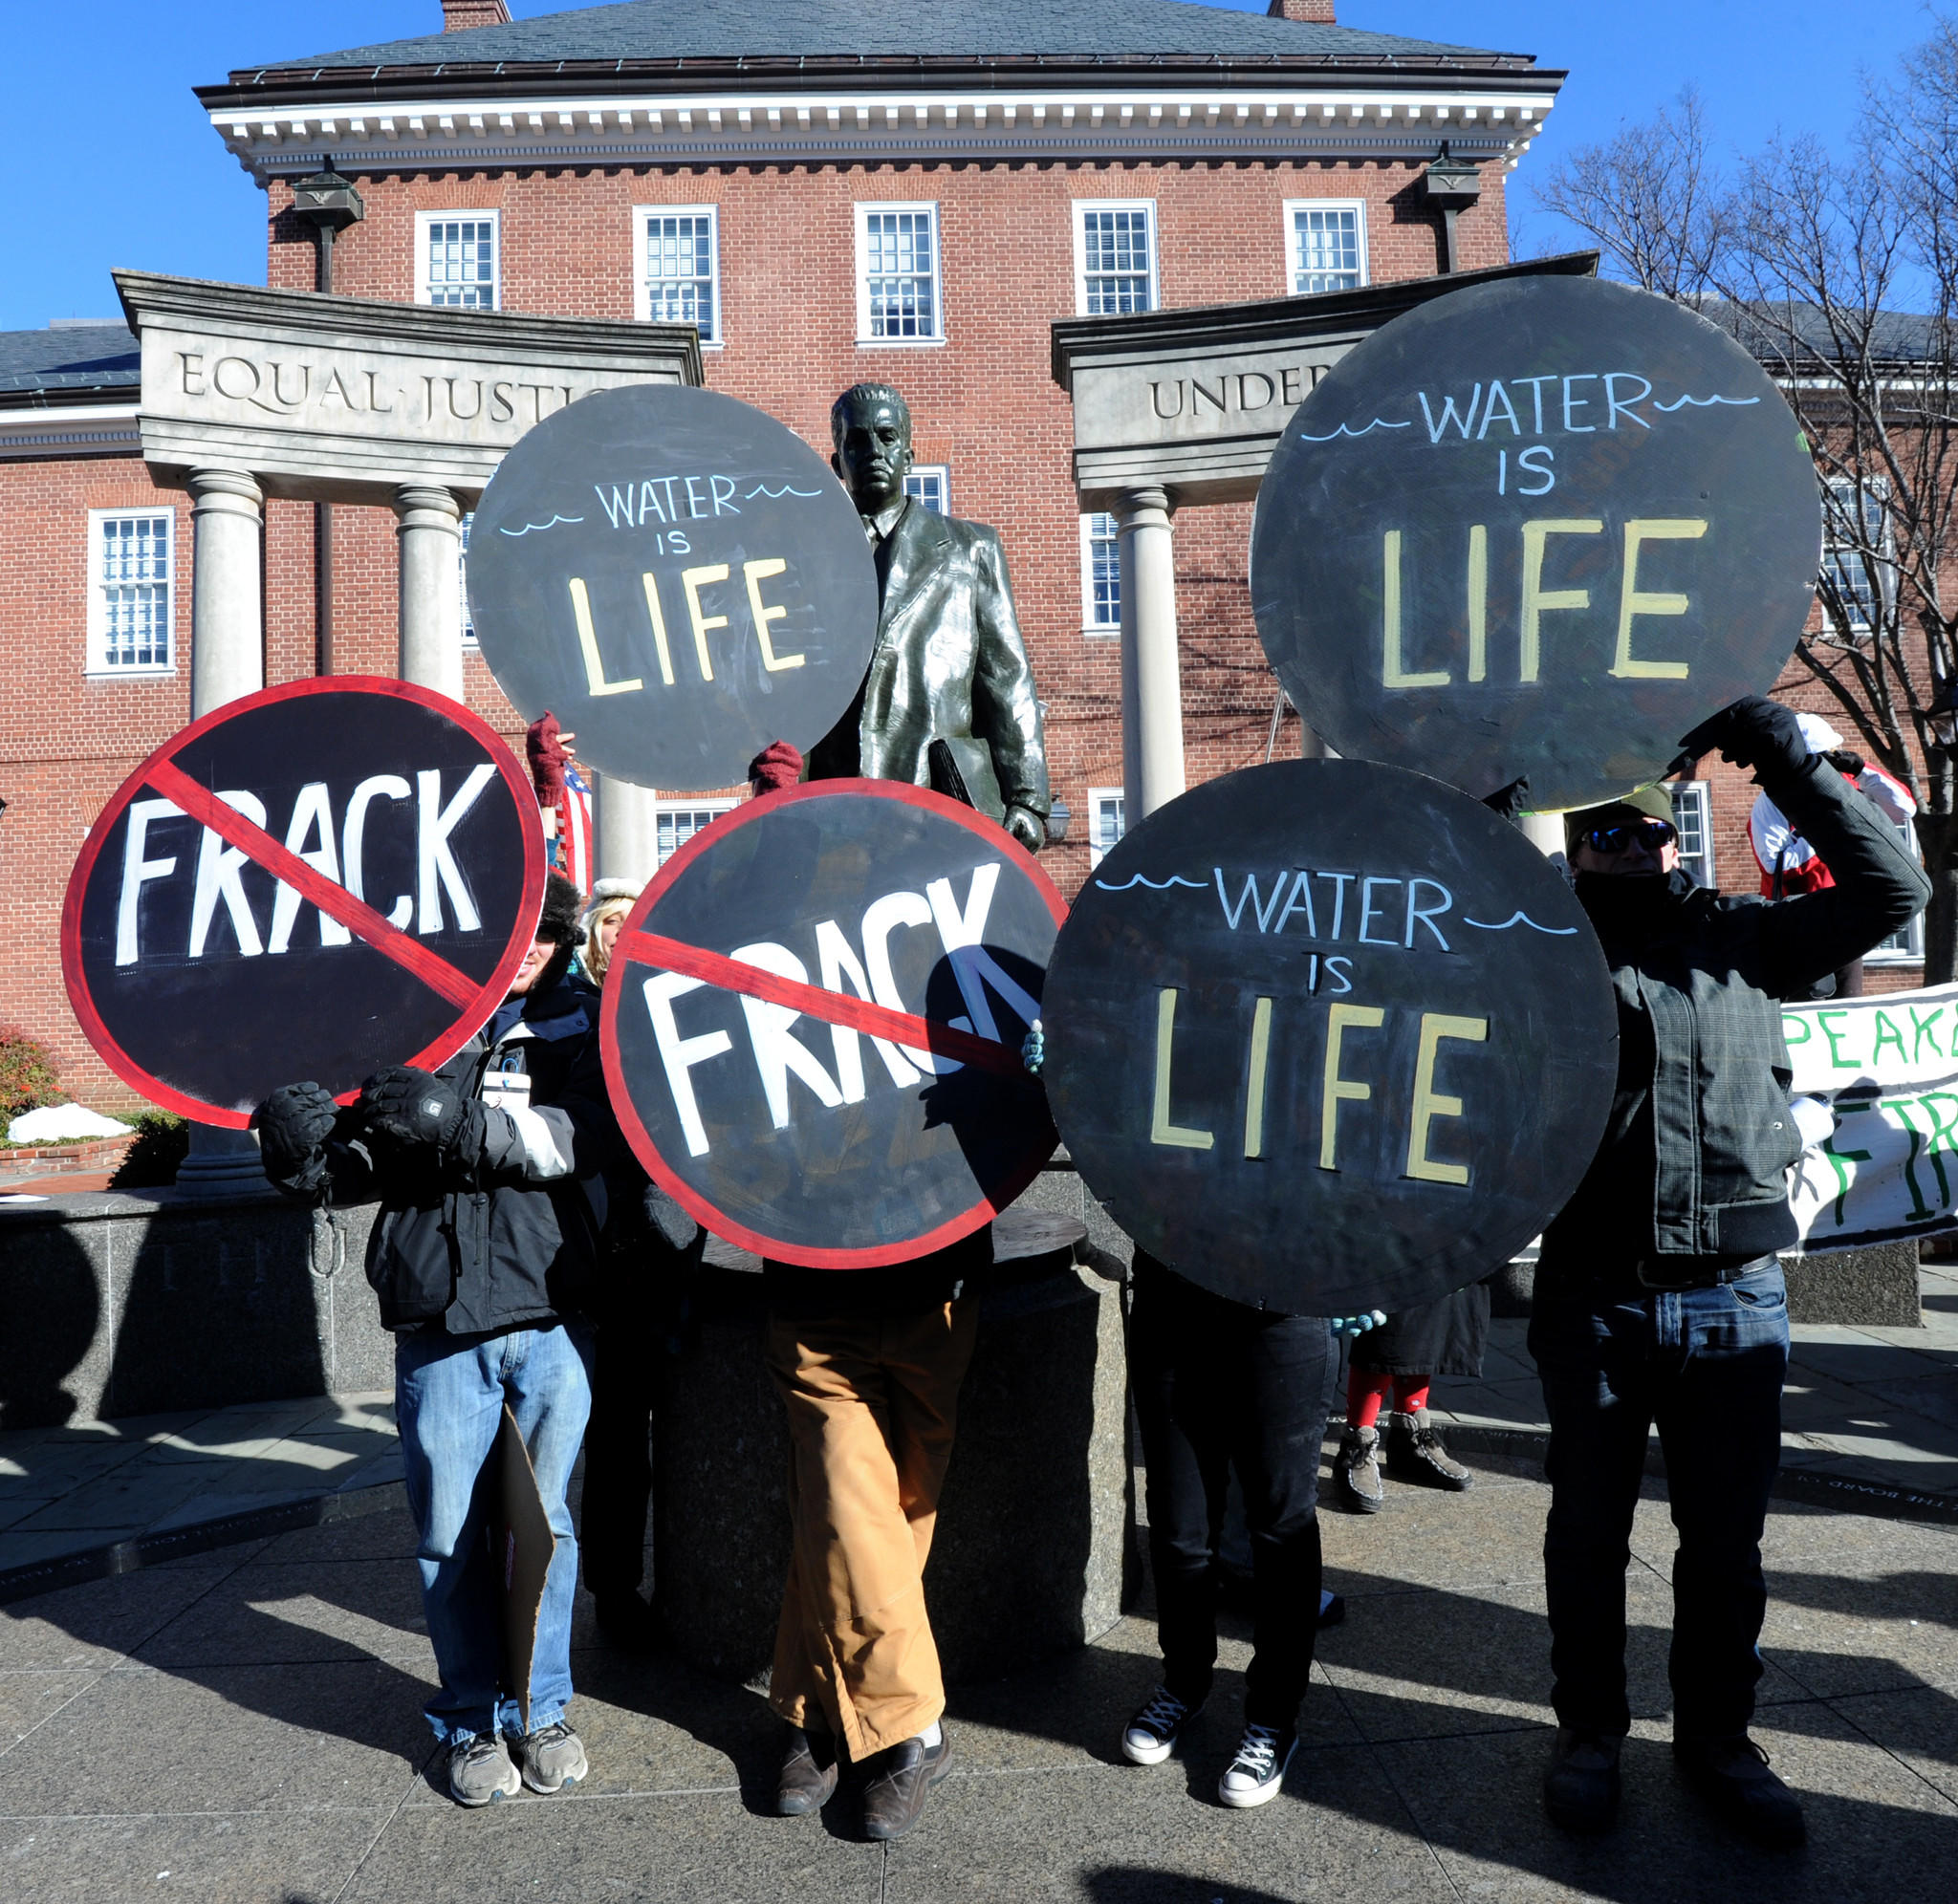 A rally was held in Lawyers Mall at 11am just before the opening of the General Assembly to encourage a moratorium on fracking